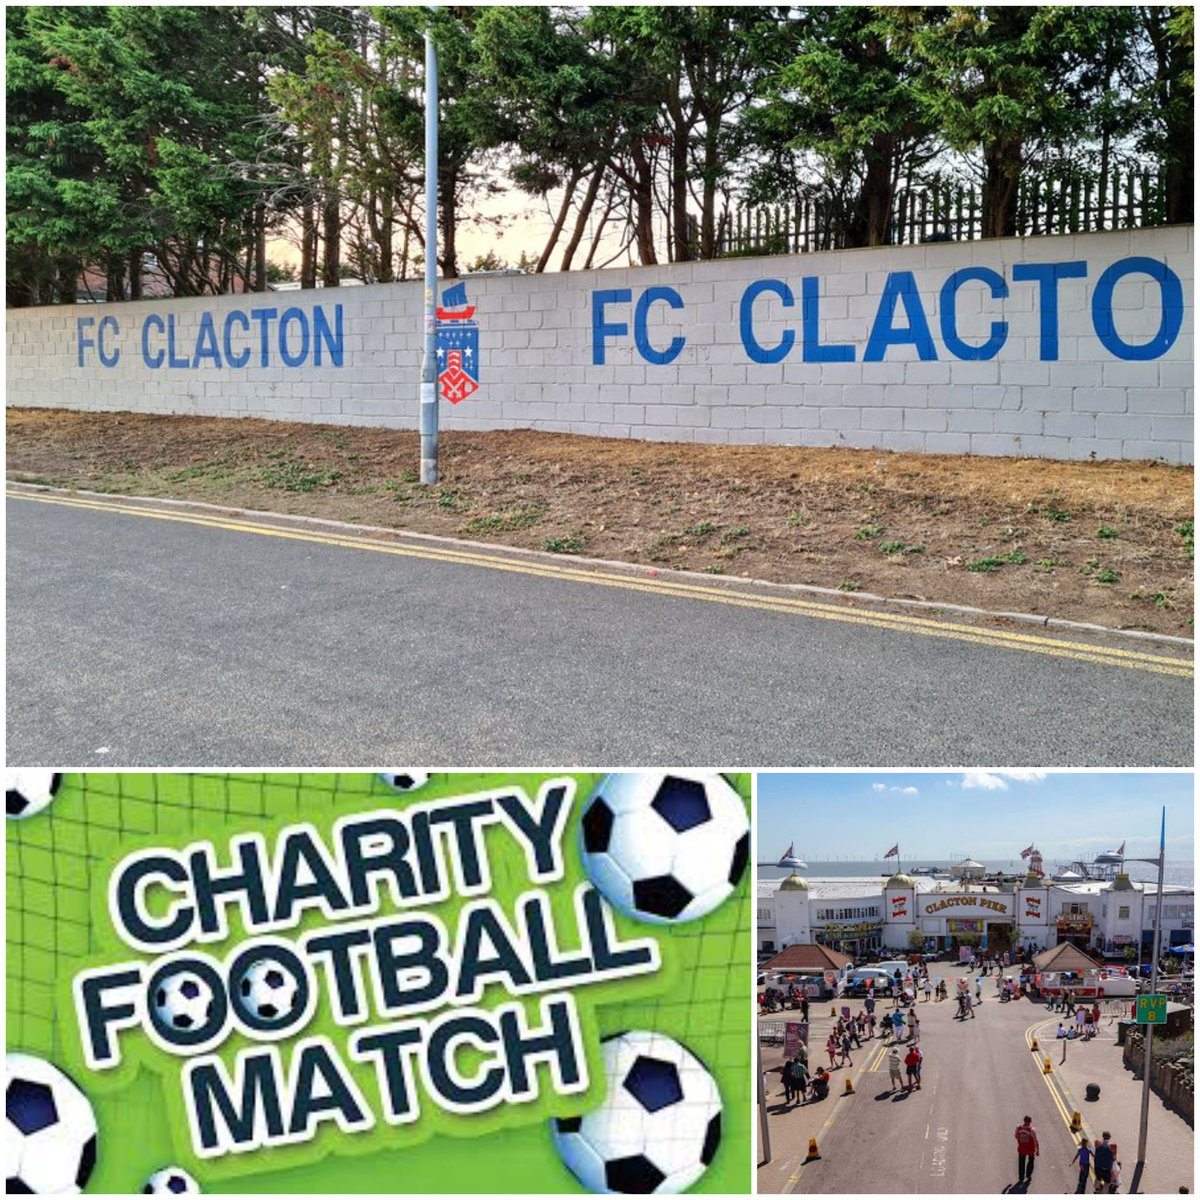 September @FC_Clacton we will be holding a great charity match & evening party event so come along, support plus have weekend by the Sea ! Fans will be invited to play so watch this space once all details are confirmed. THE BEAT DOES GO ON!!